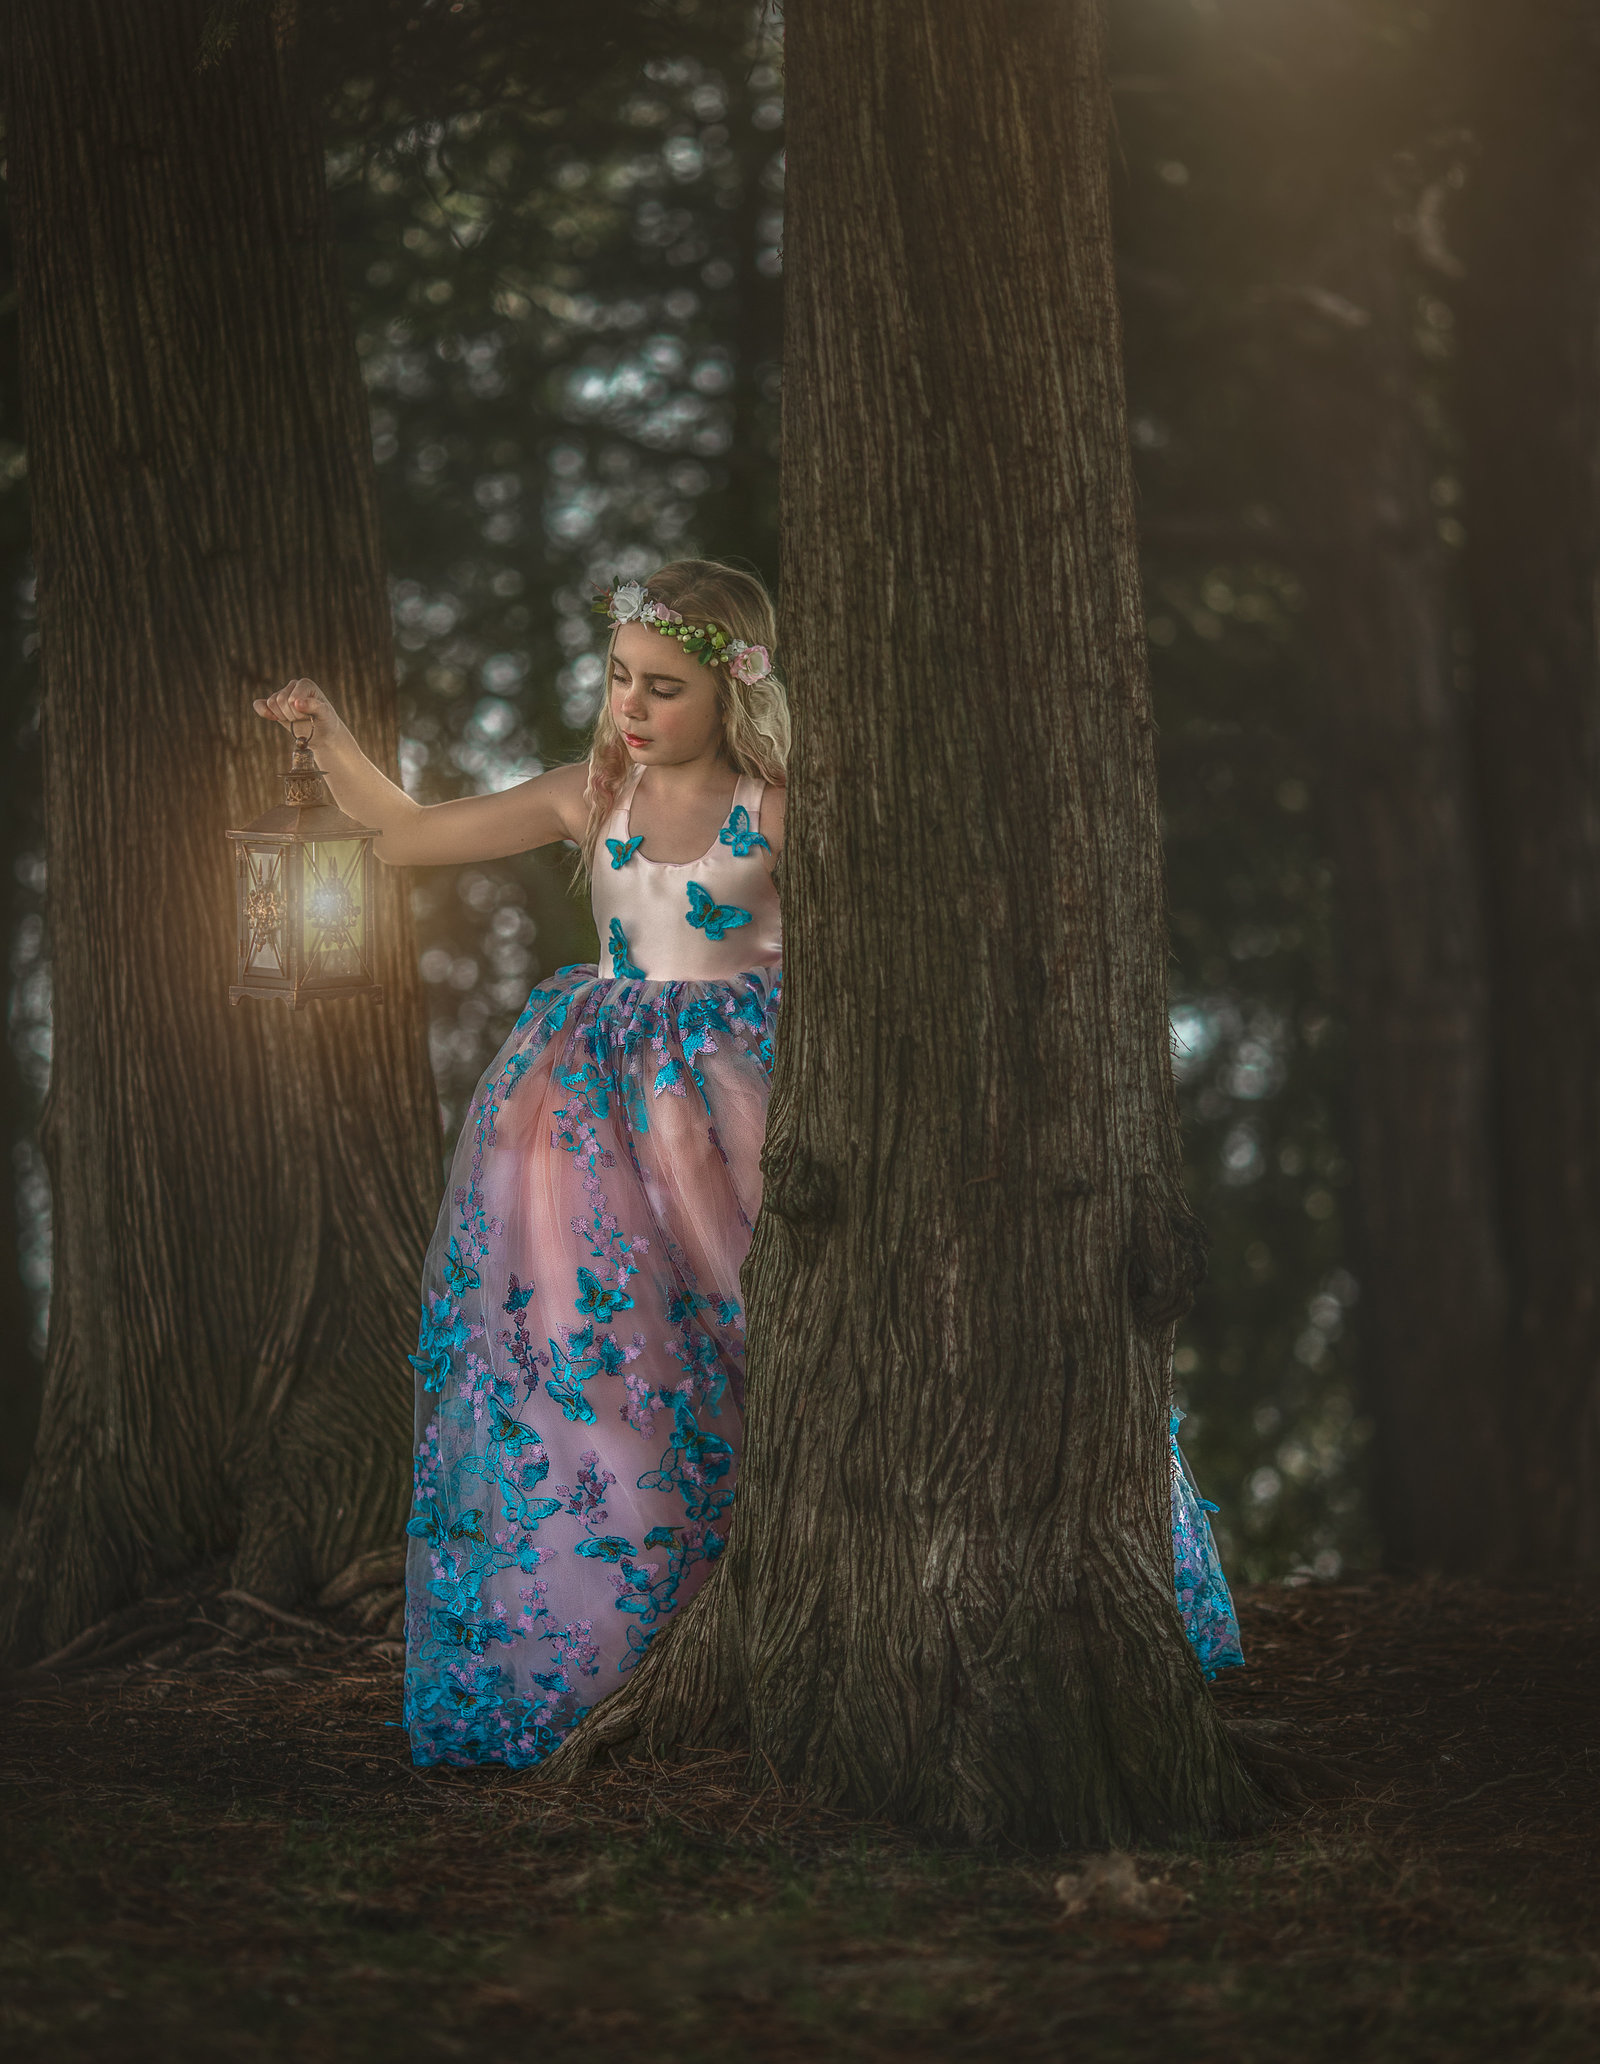 Pretty dreams photography fairy tale session